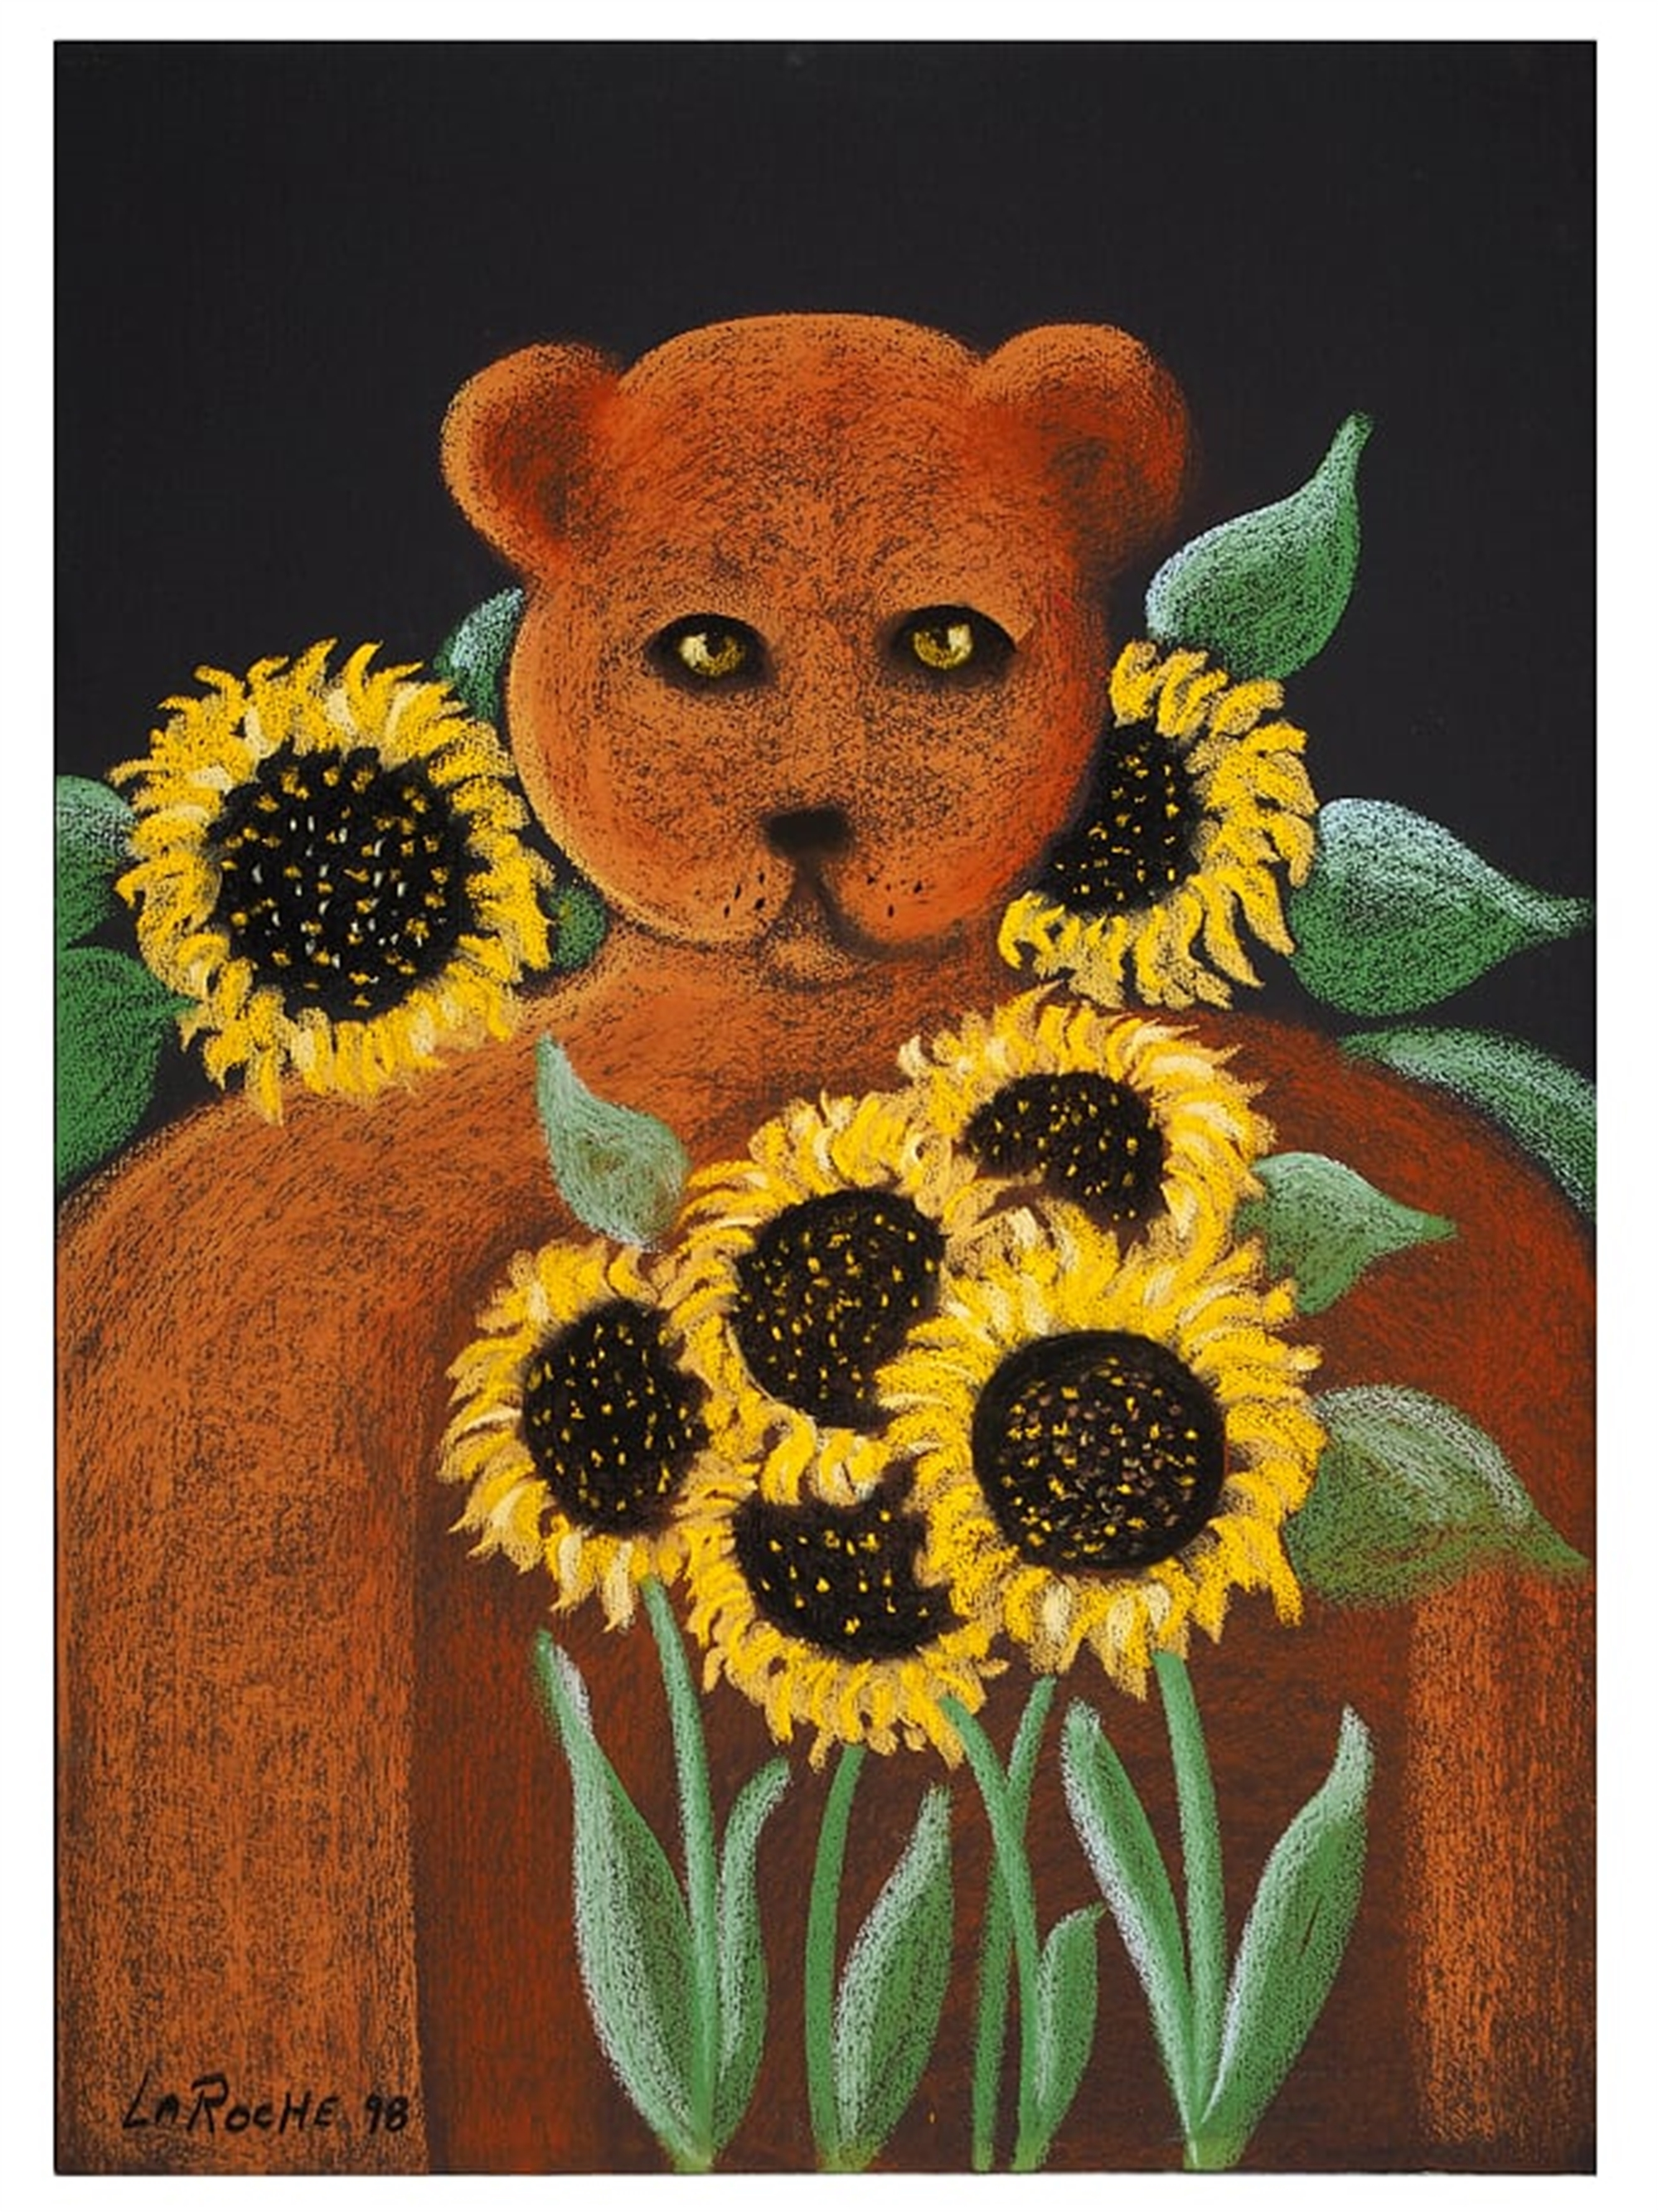 BEAR WITH SUNFLOWERS by Carole LaRoche